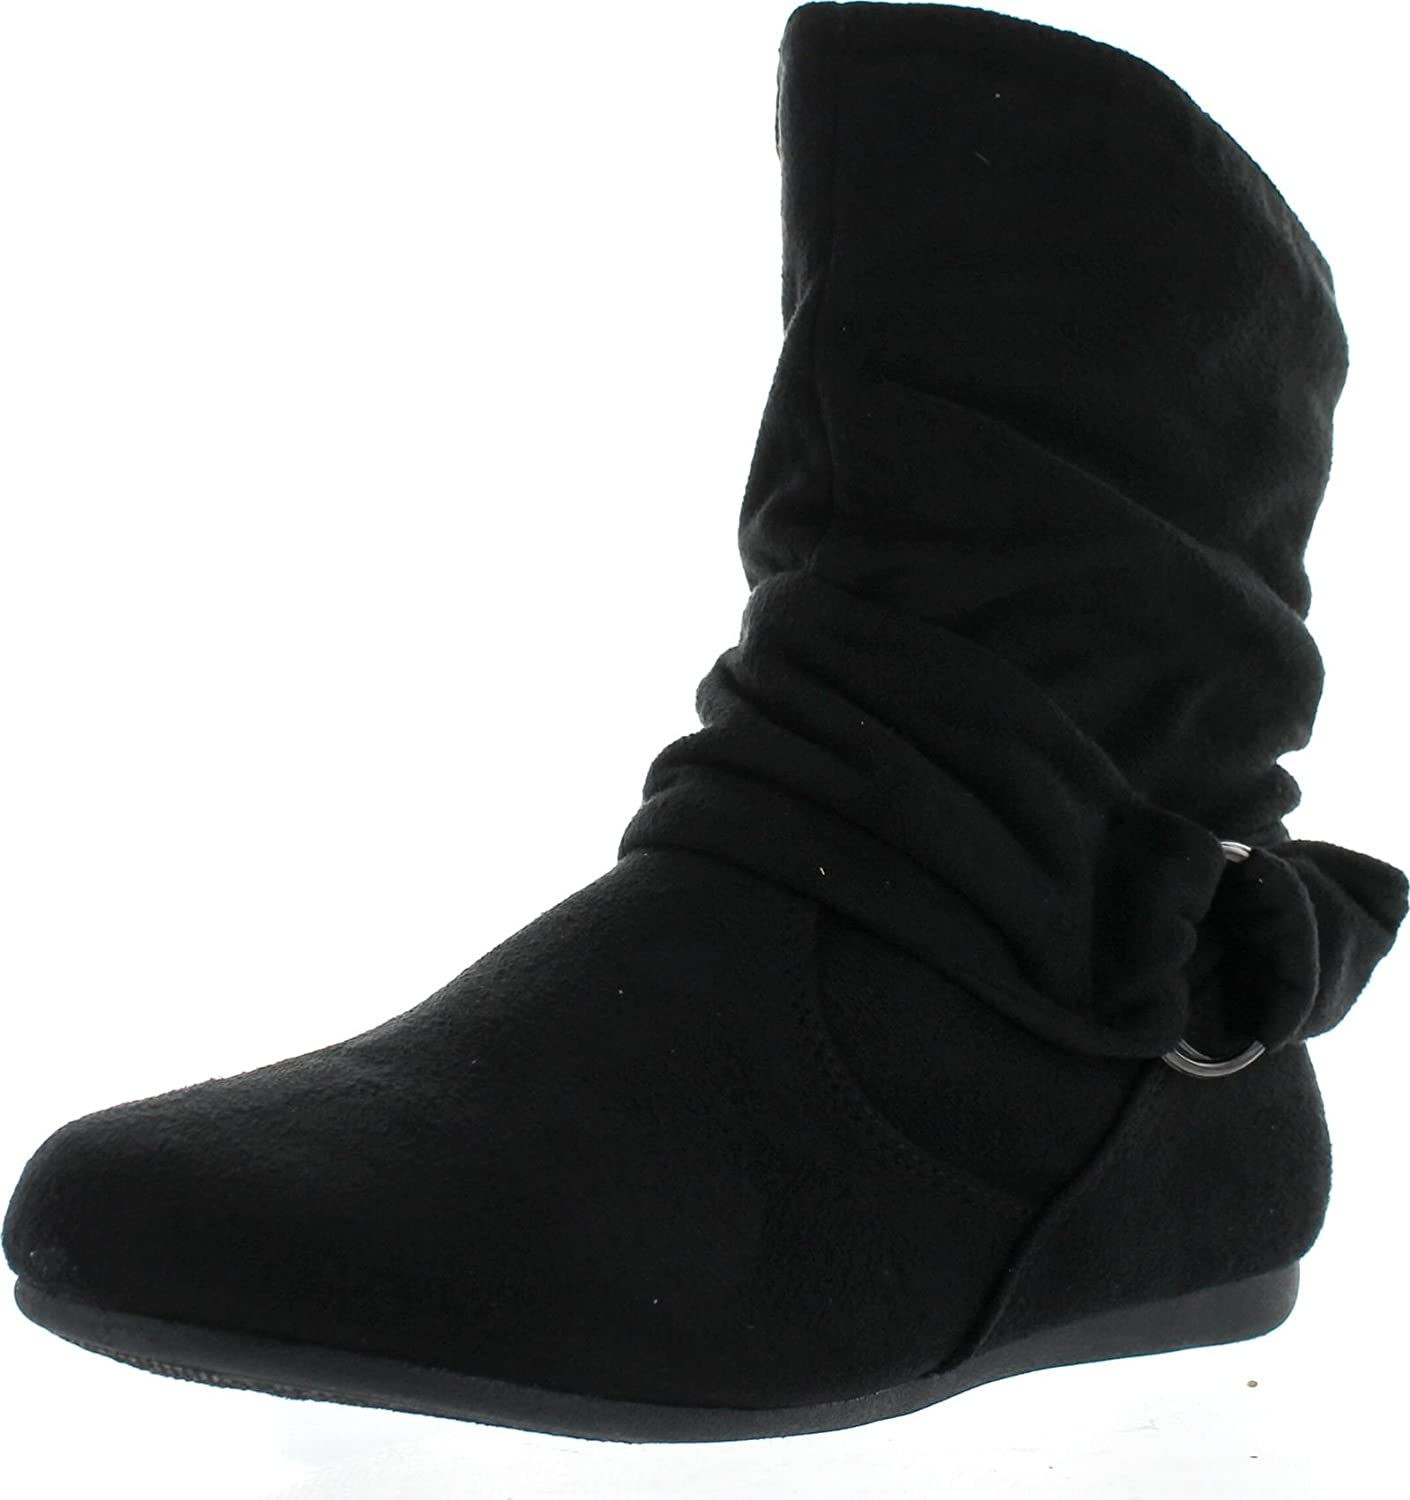 Black Flat Ankle Boots For Women